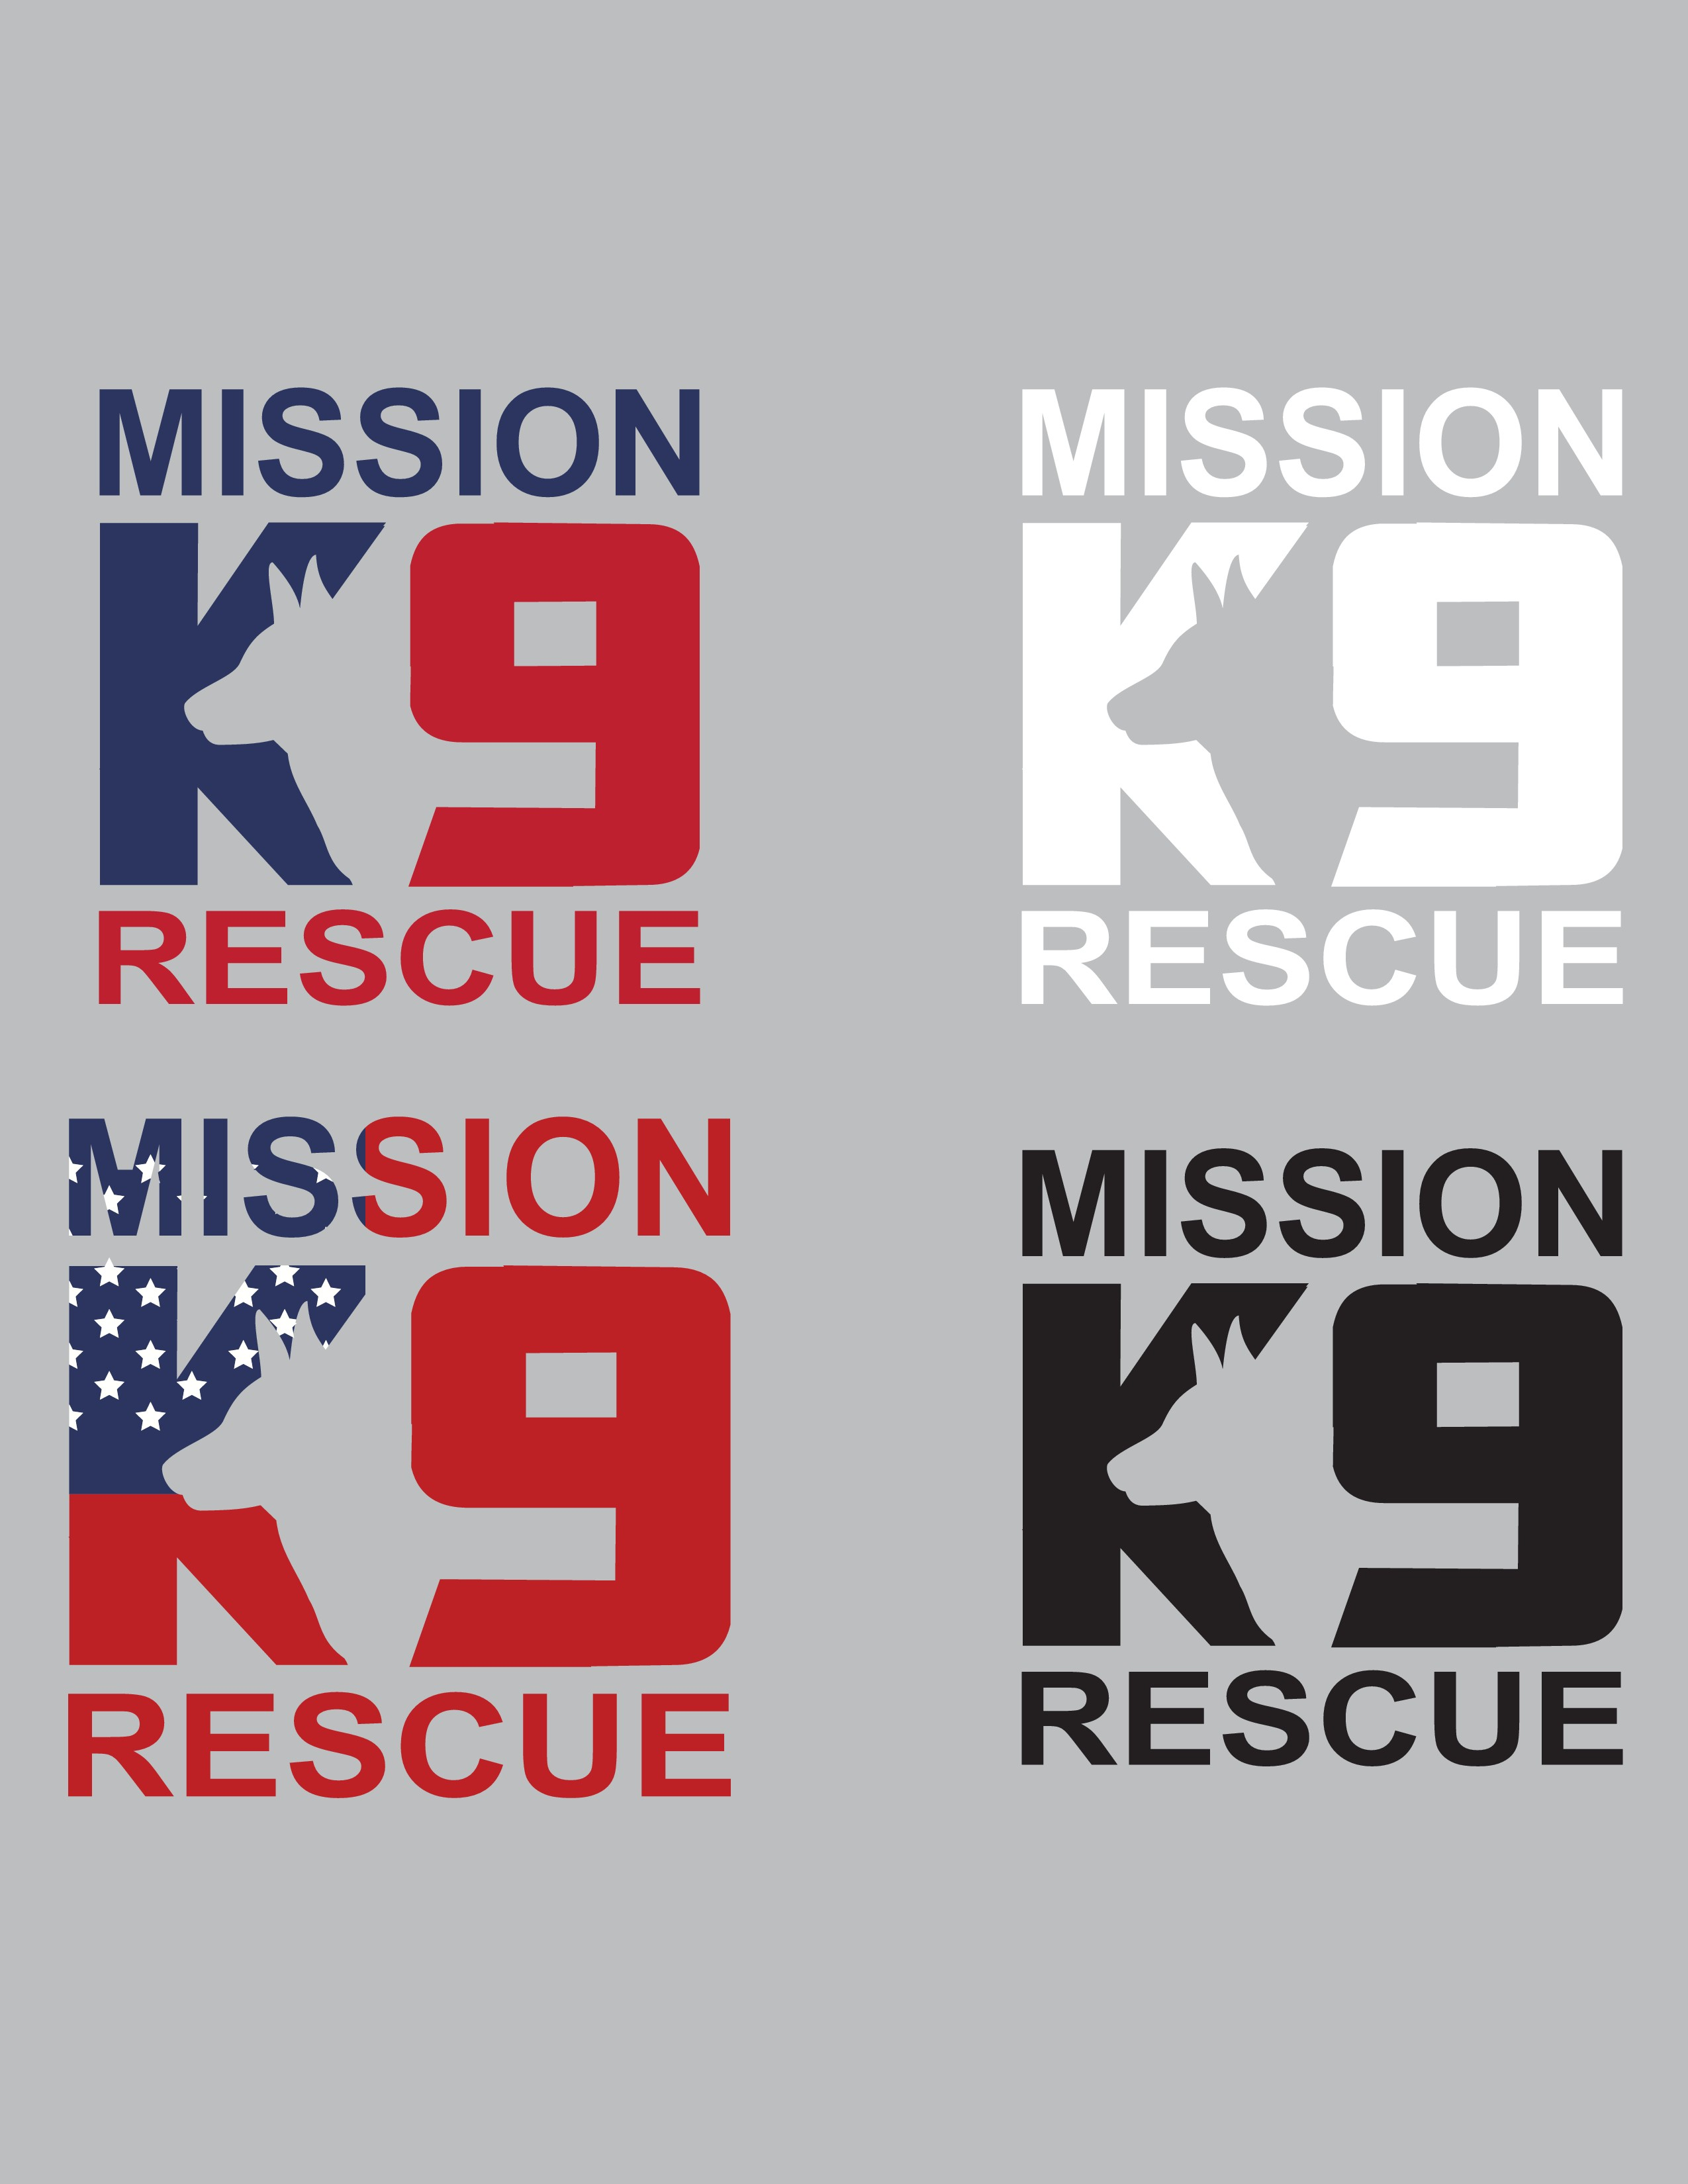 Create a working dog illustration for Mission K9 Rescue